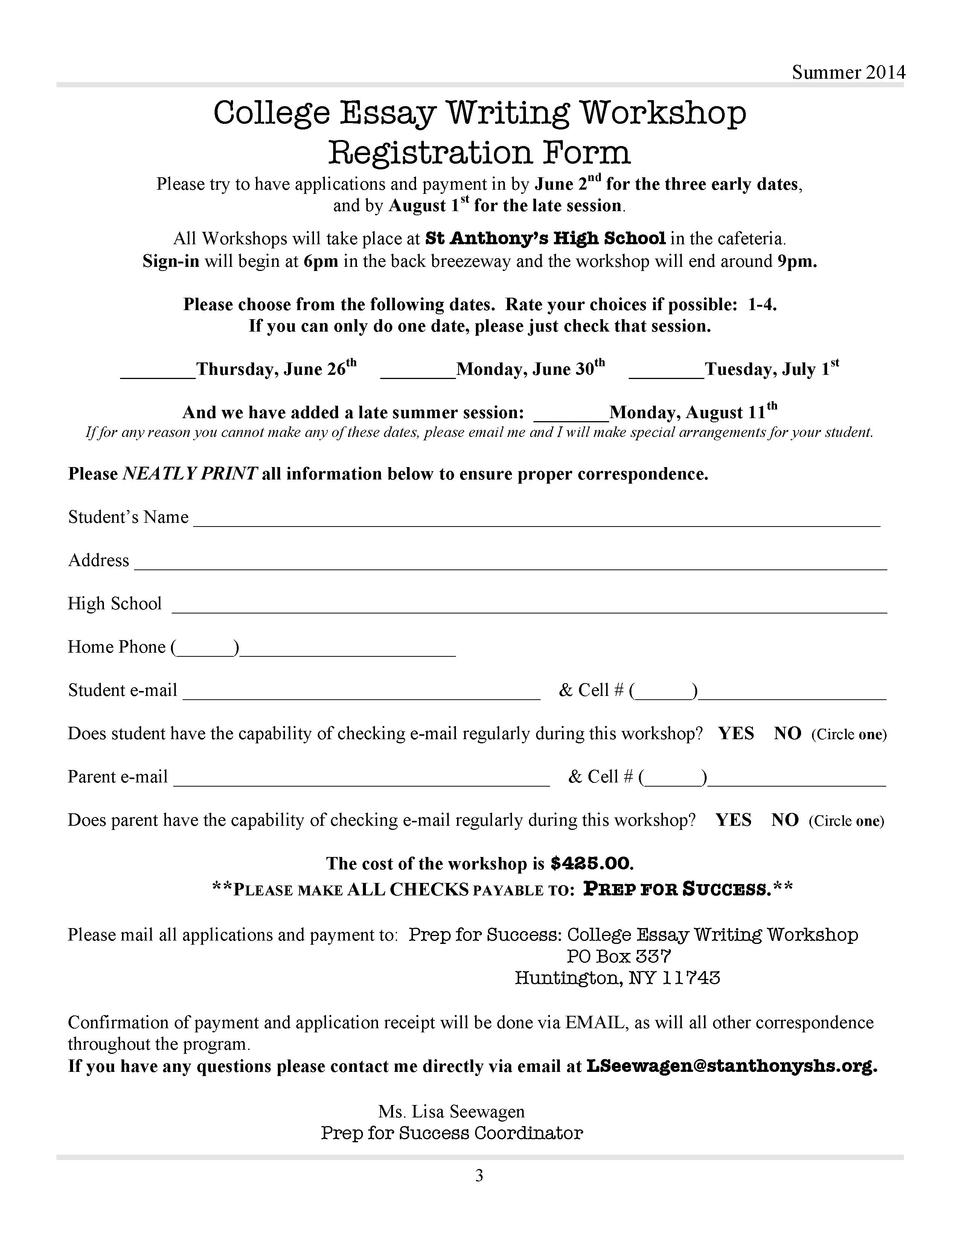 College Essay Workshop St Anthony S High School Summer 2014 College Essay  Writing Workshop Registration Form